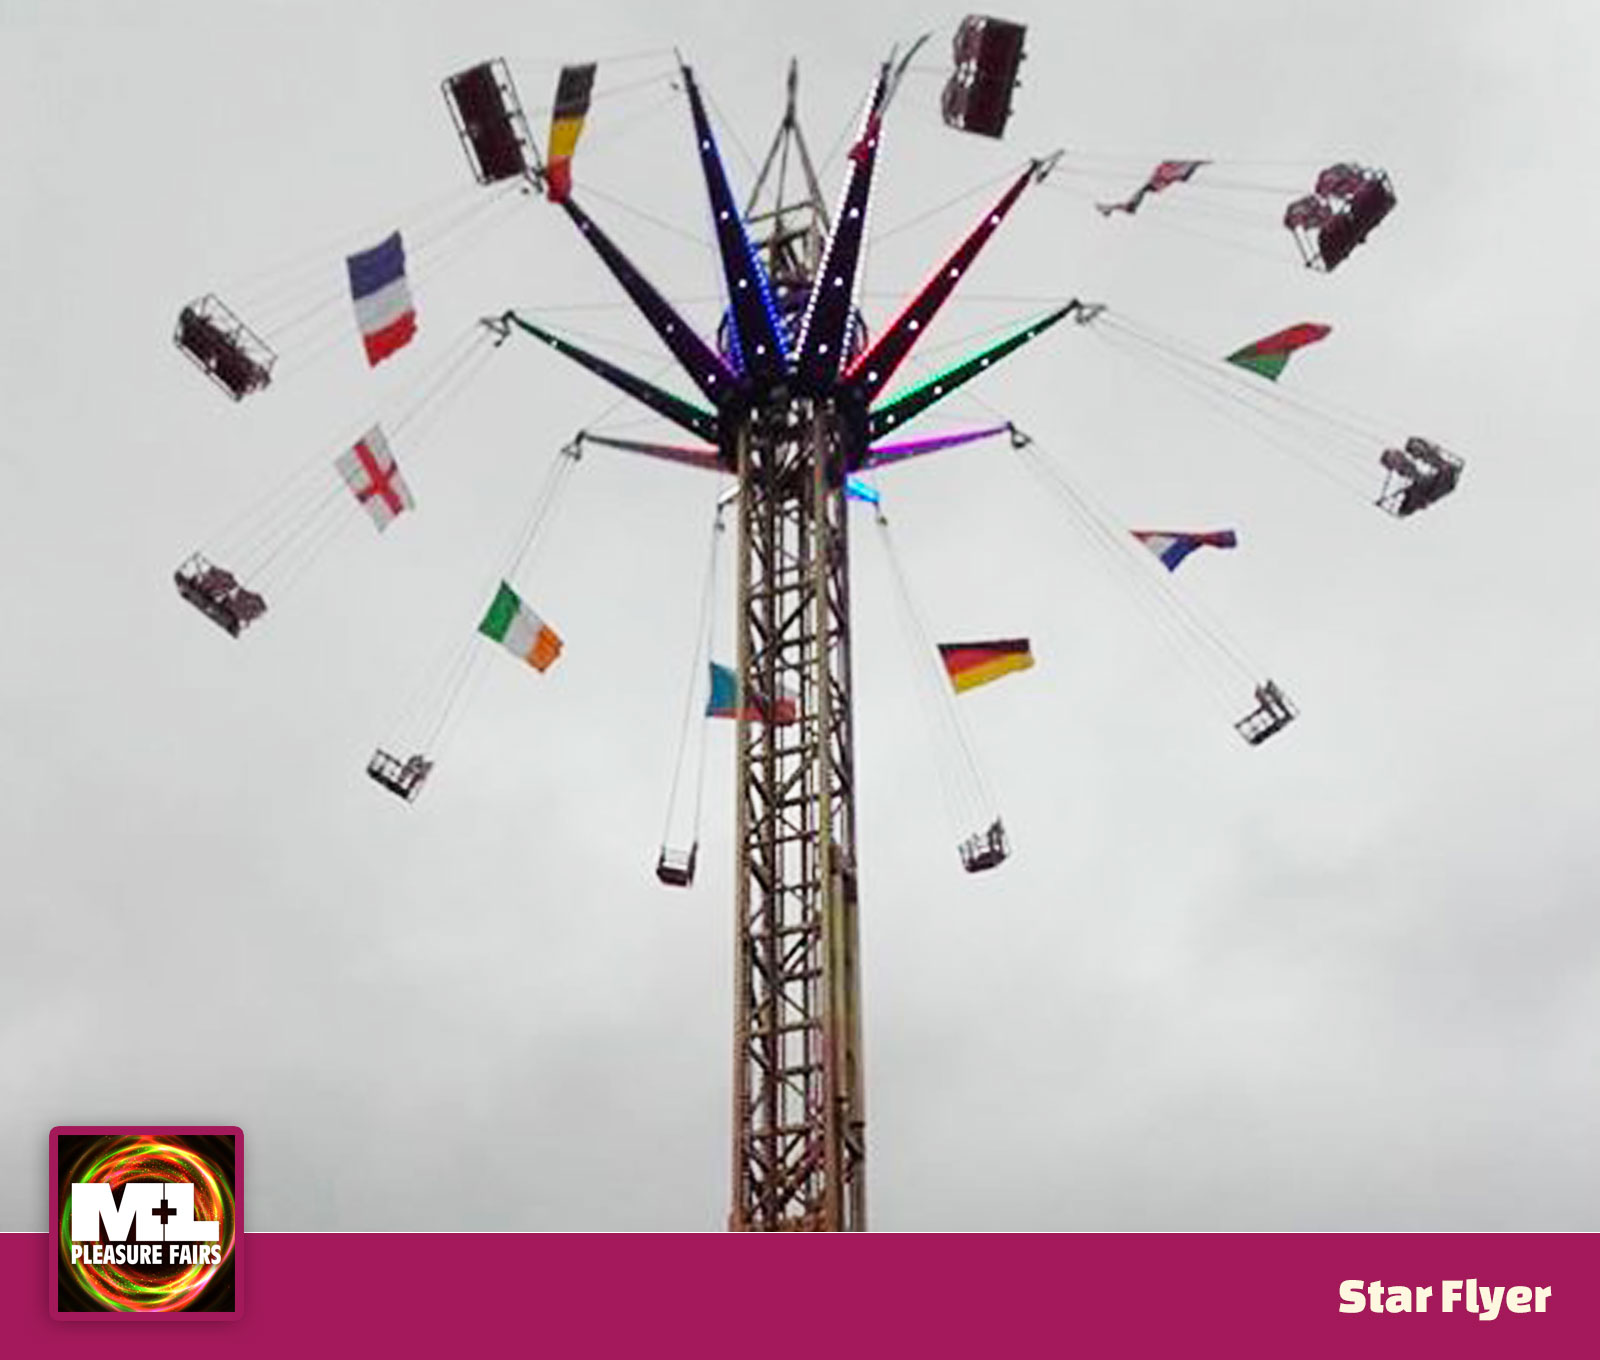 Star Flyer Ride Image